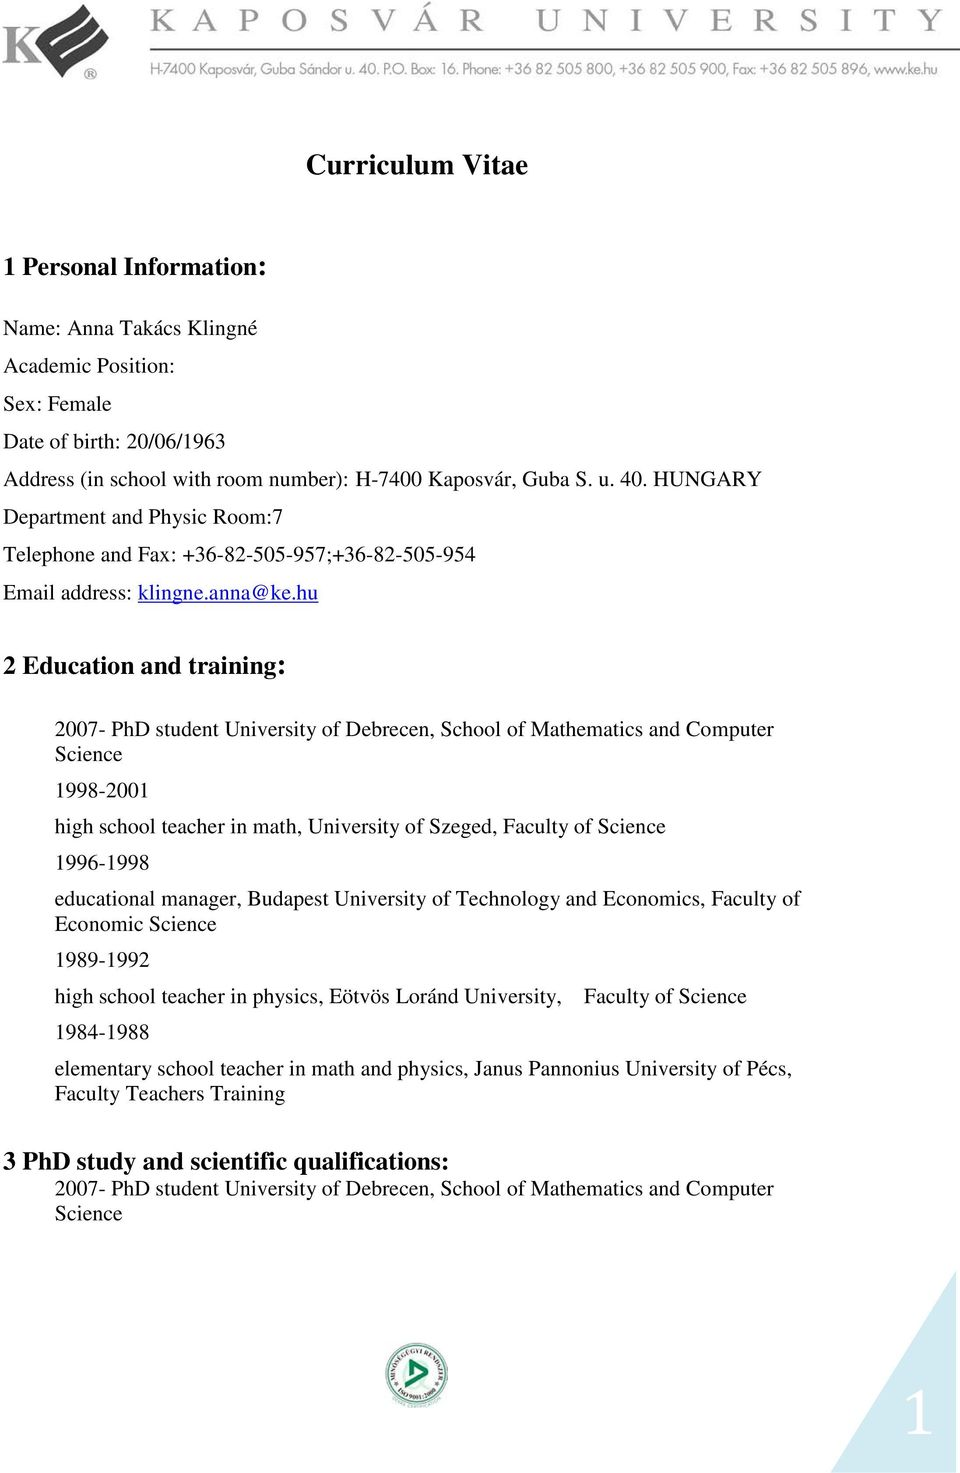 hu 2 Education and training: 2007- PhD student University of Debrecen, School of Mathematics and Computer Science 1998-2001 high school teacher in math, University of Szeged, Faculty of Science